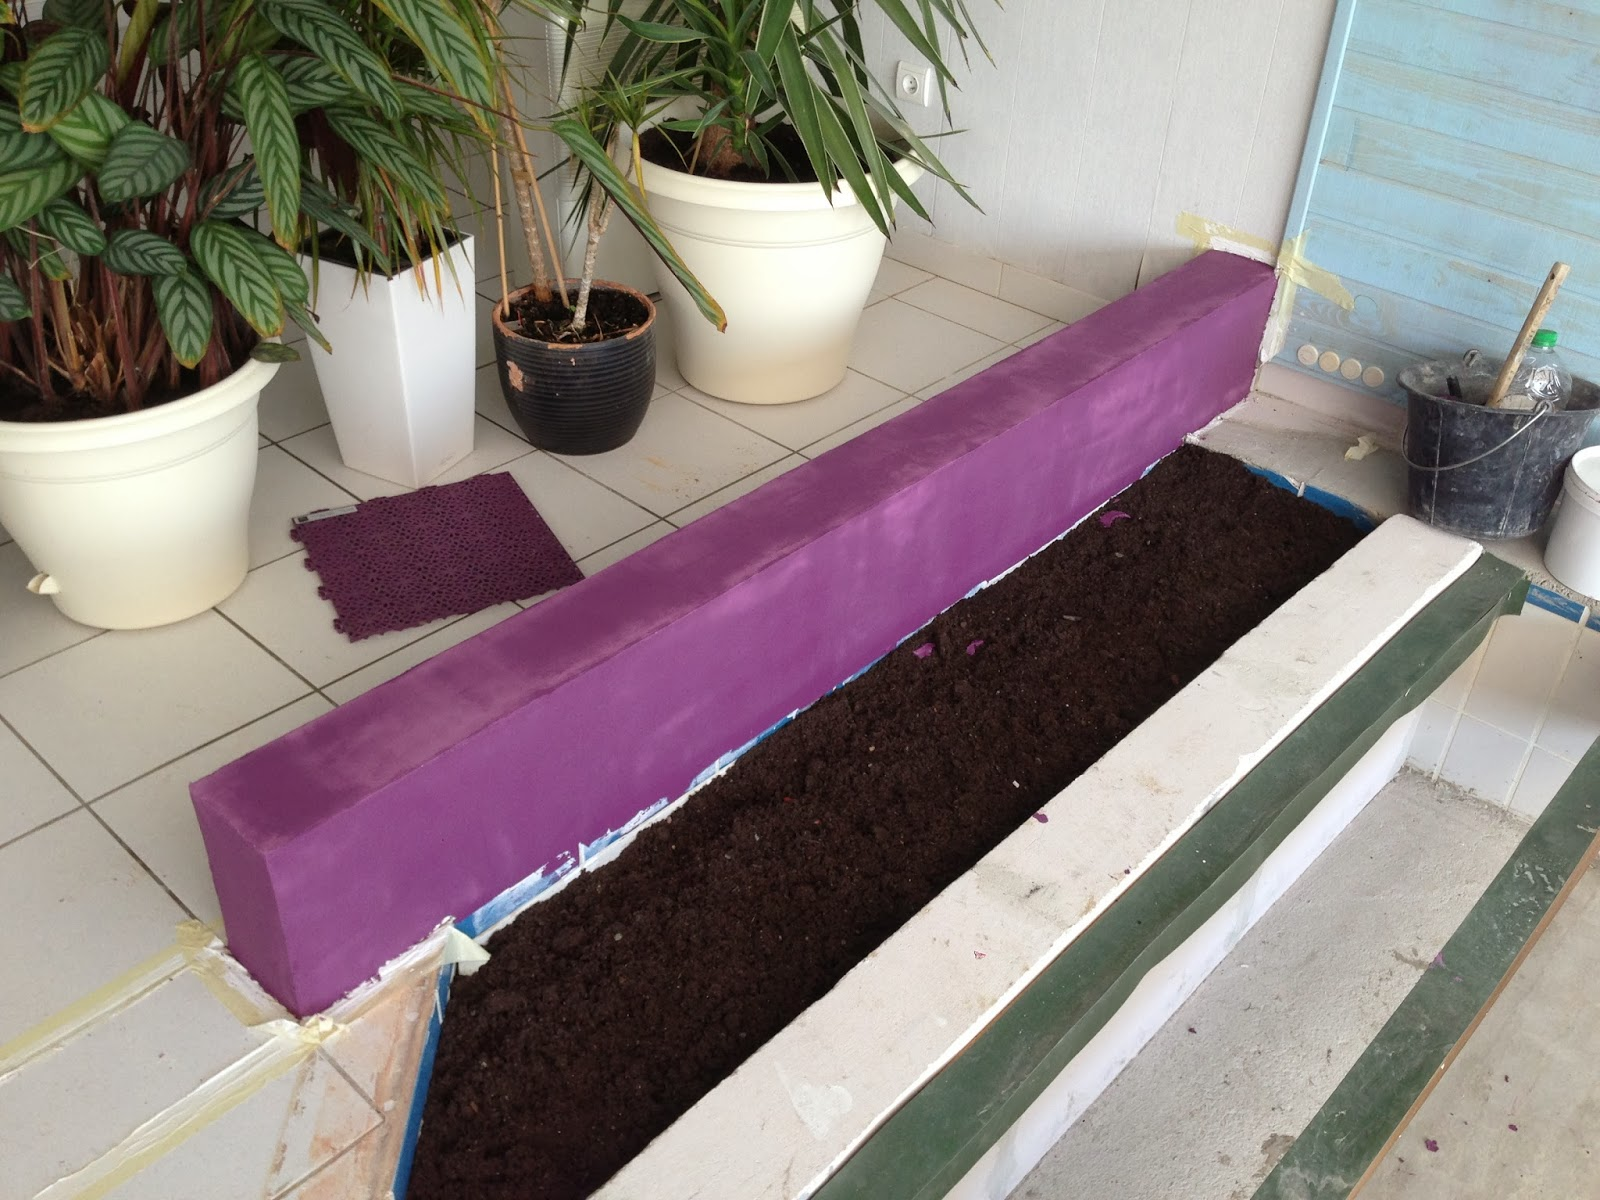 Int gration d 39 un spa dans un am nagement int rieur citygardner by gardn - Comment commercialiser une invention ...